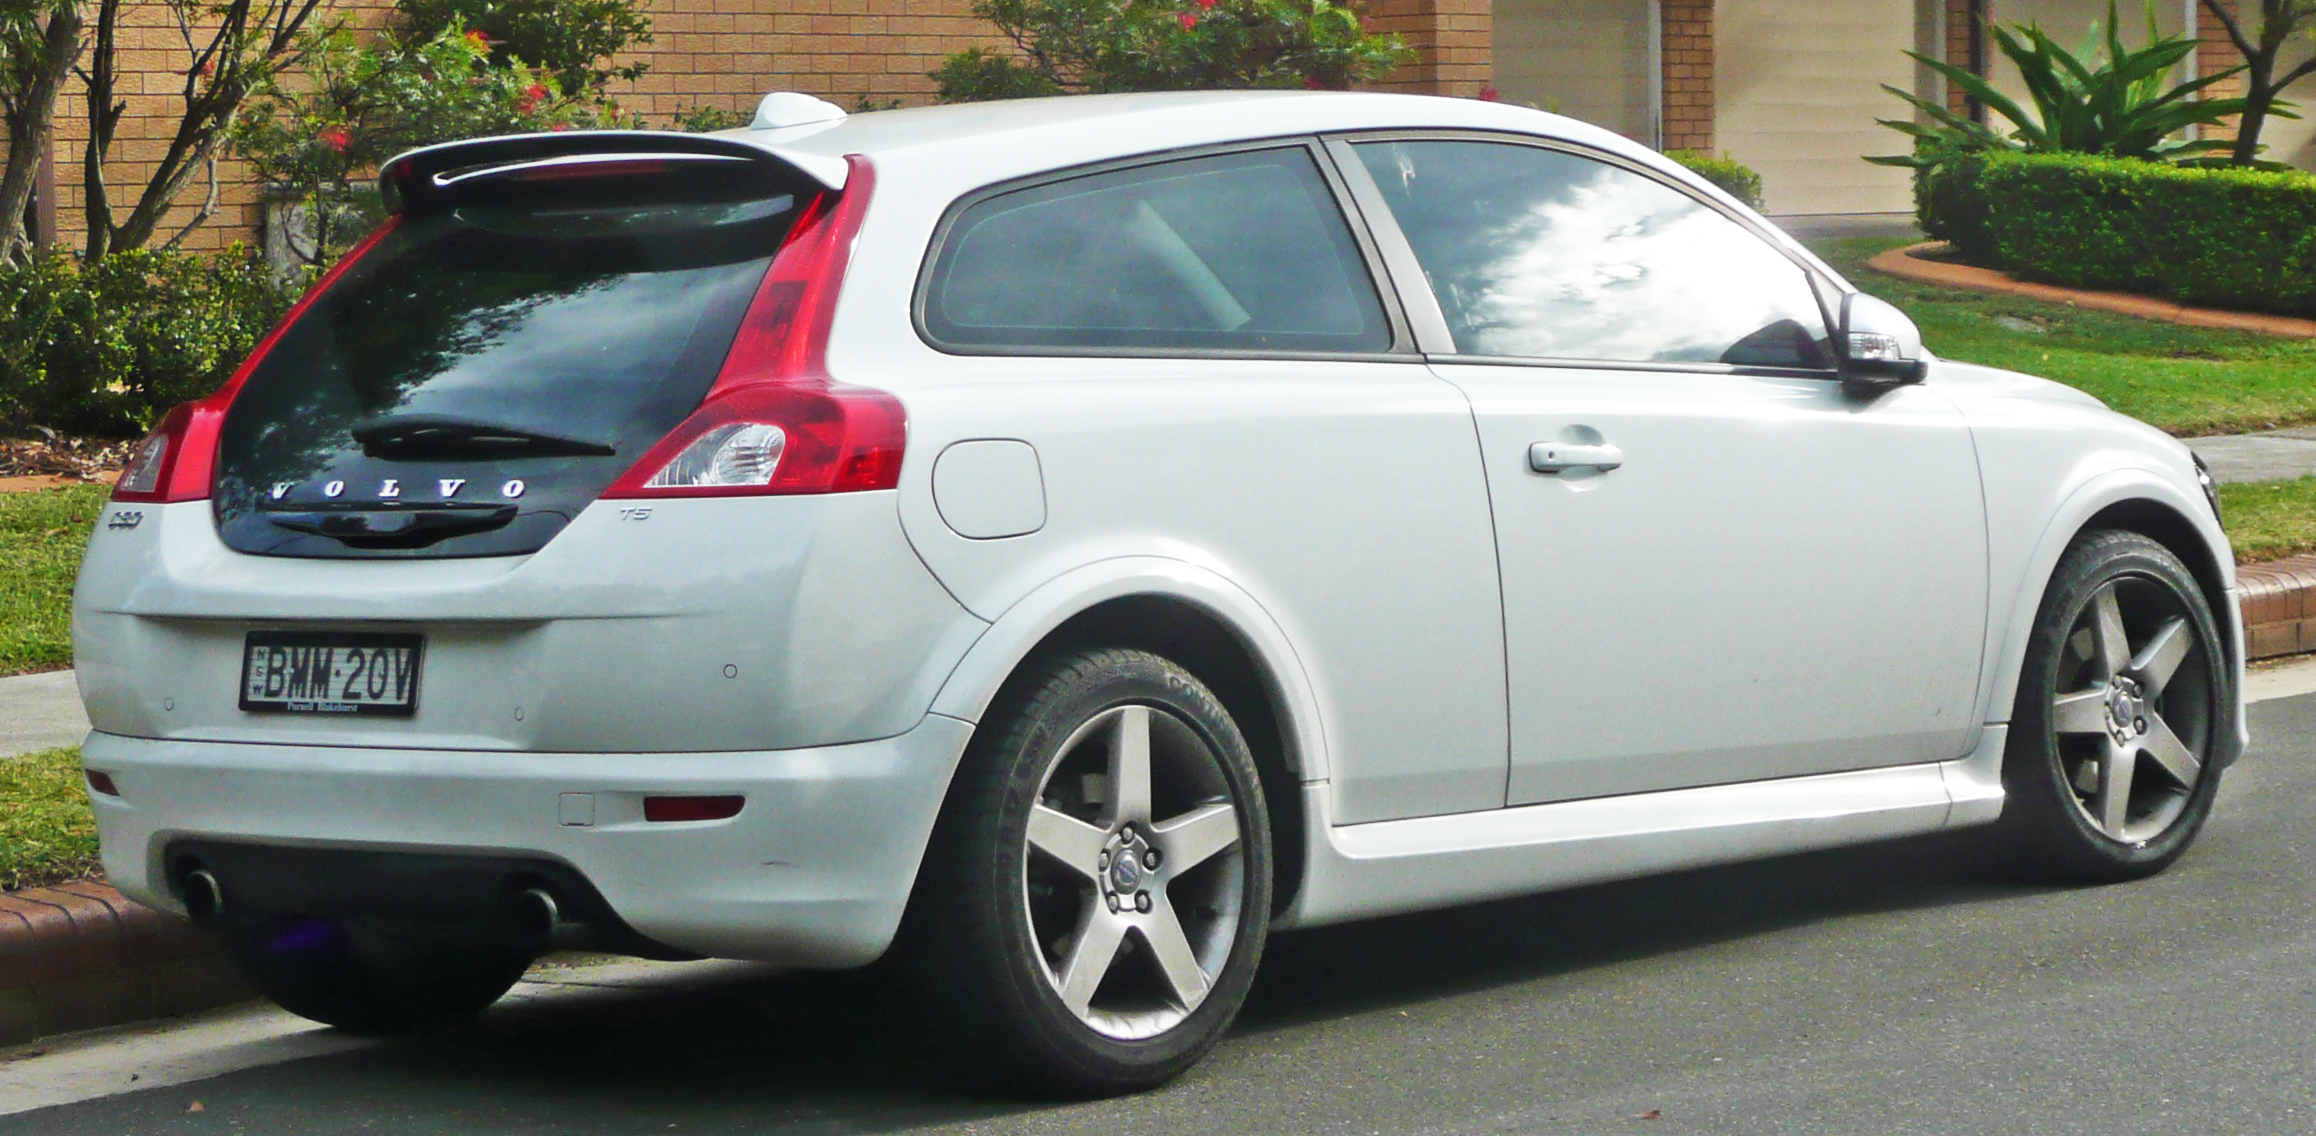 File:2008-2009 Volvo C30 T5 hatchback 02.jpg - Wikimedia Commons